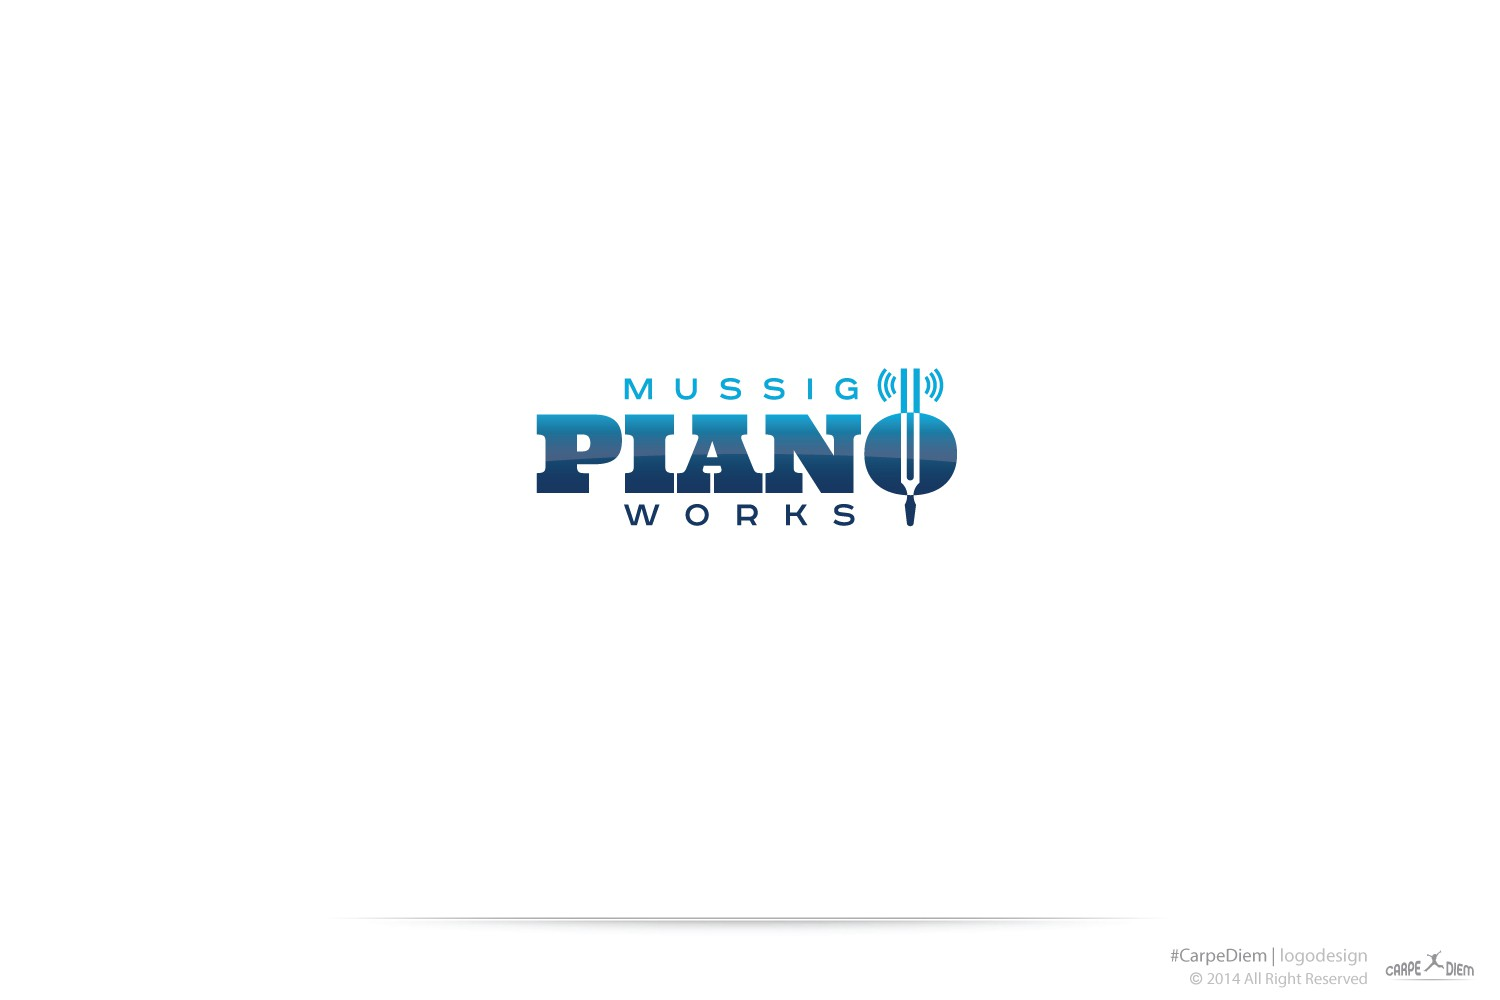 Iowa Piano Technician wants logo to brand biz to classy, high-end cliental